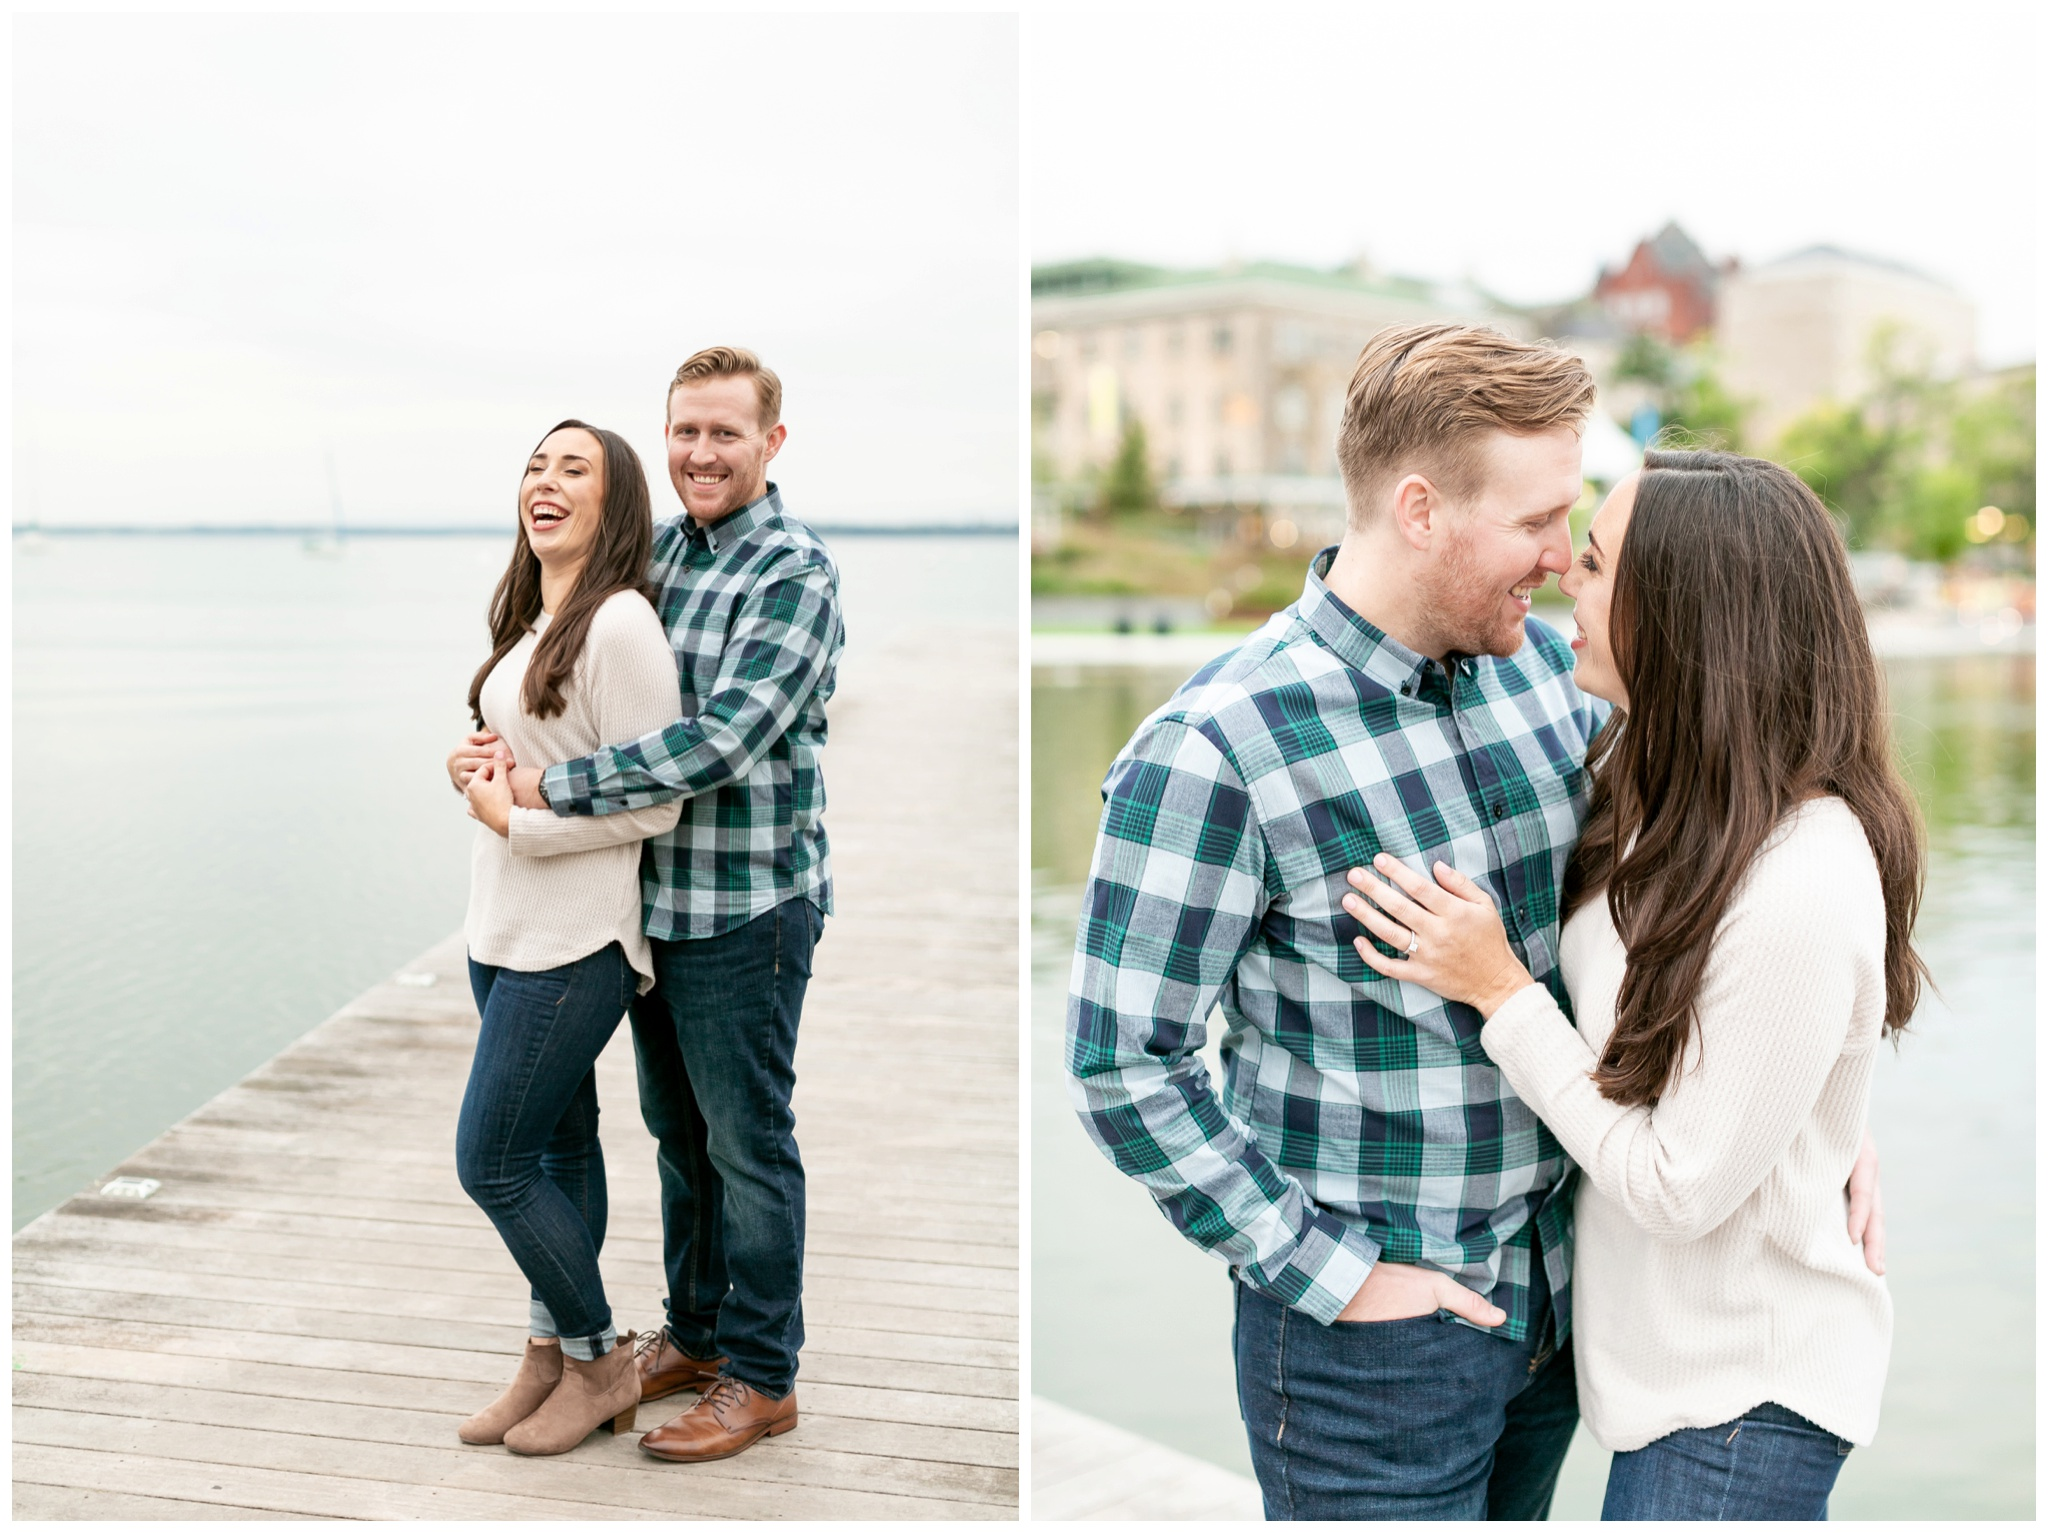 memorial_union_engagement_session_madison_wisconsin_1658.jpg